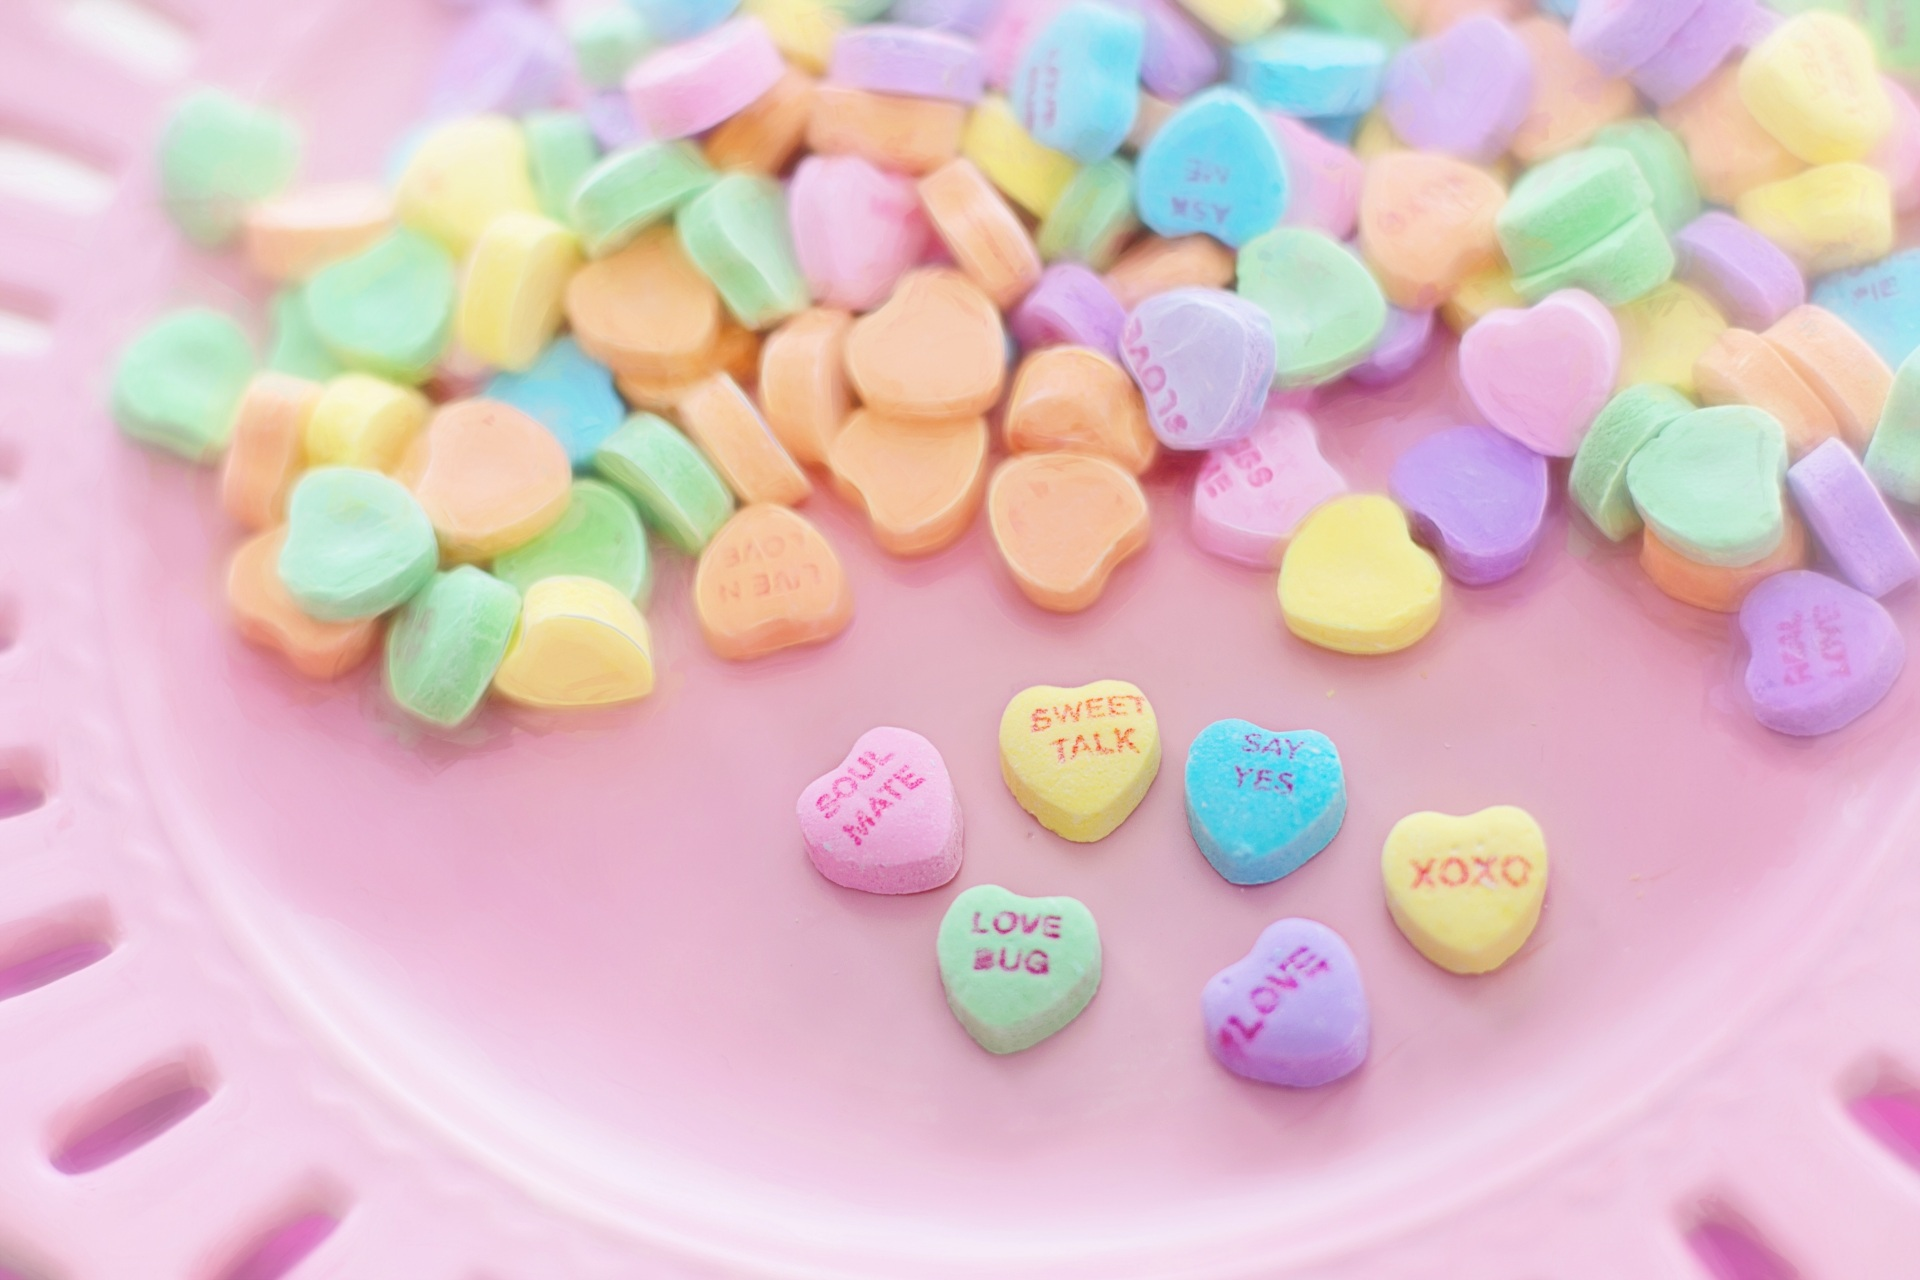 Valentine's Day candy hearts.